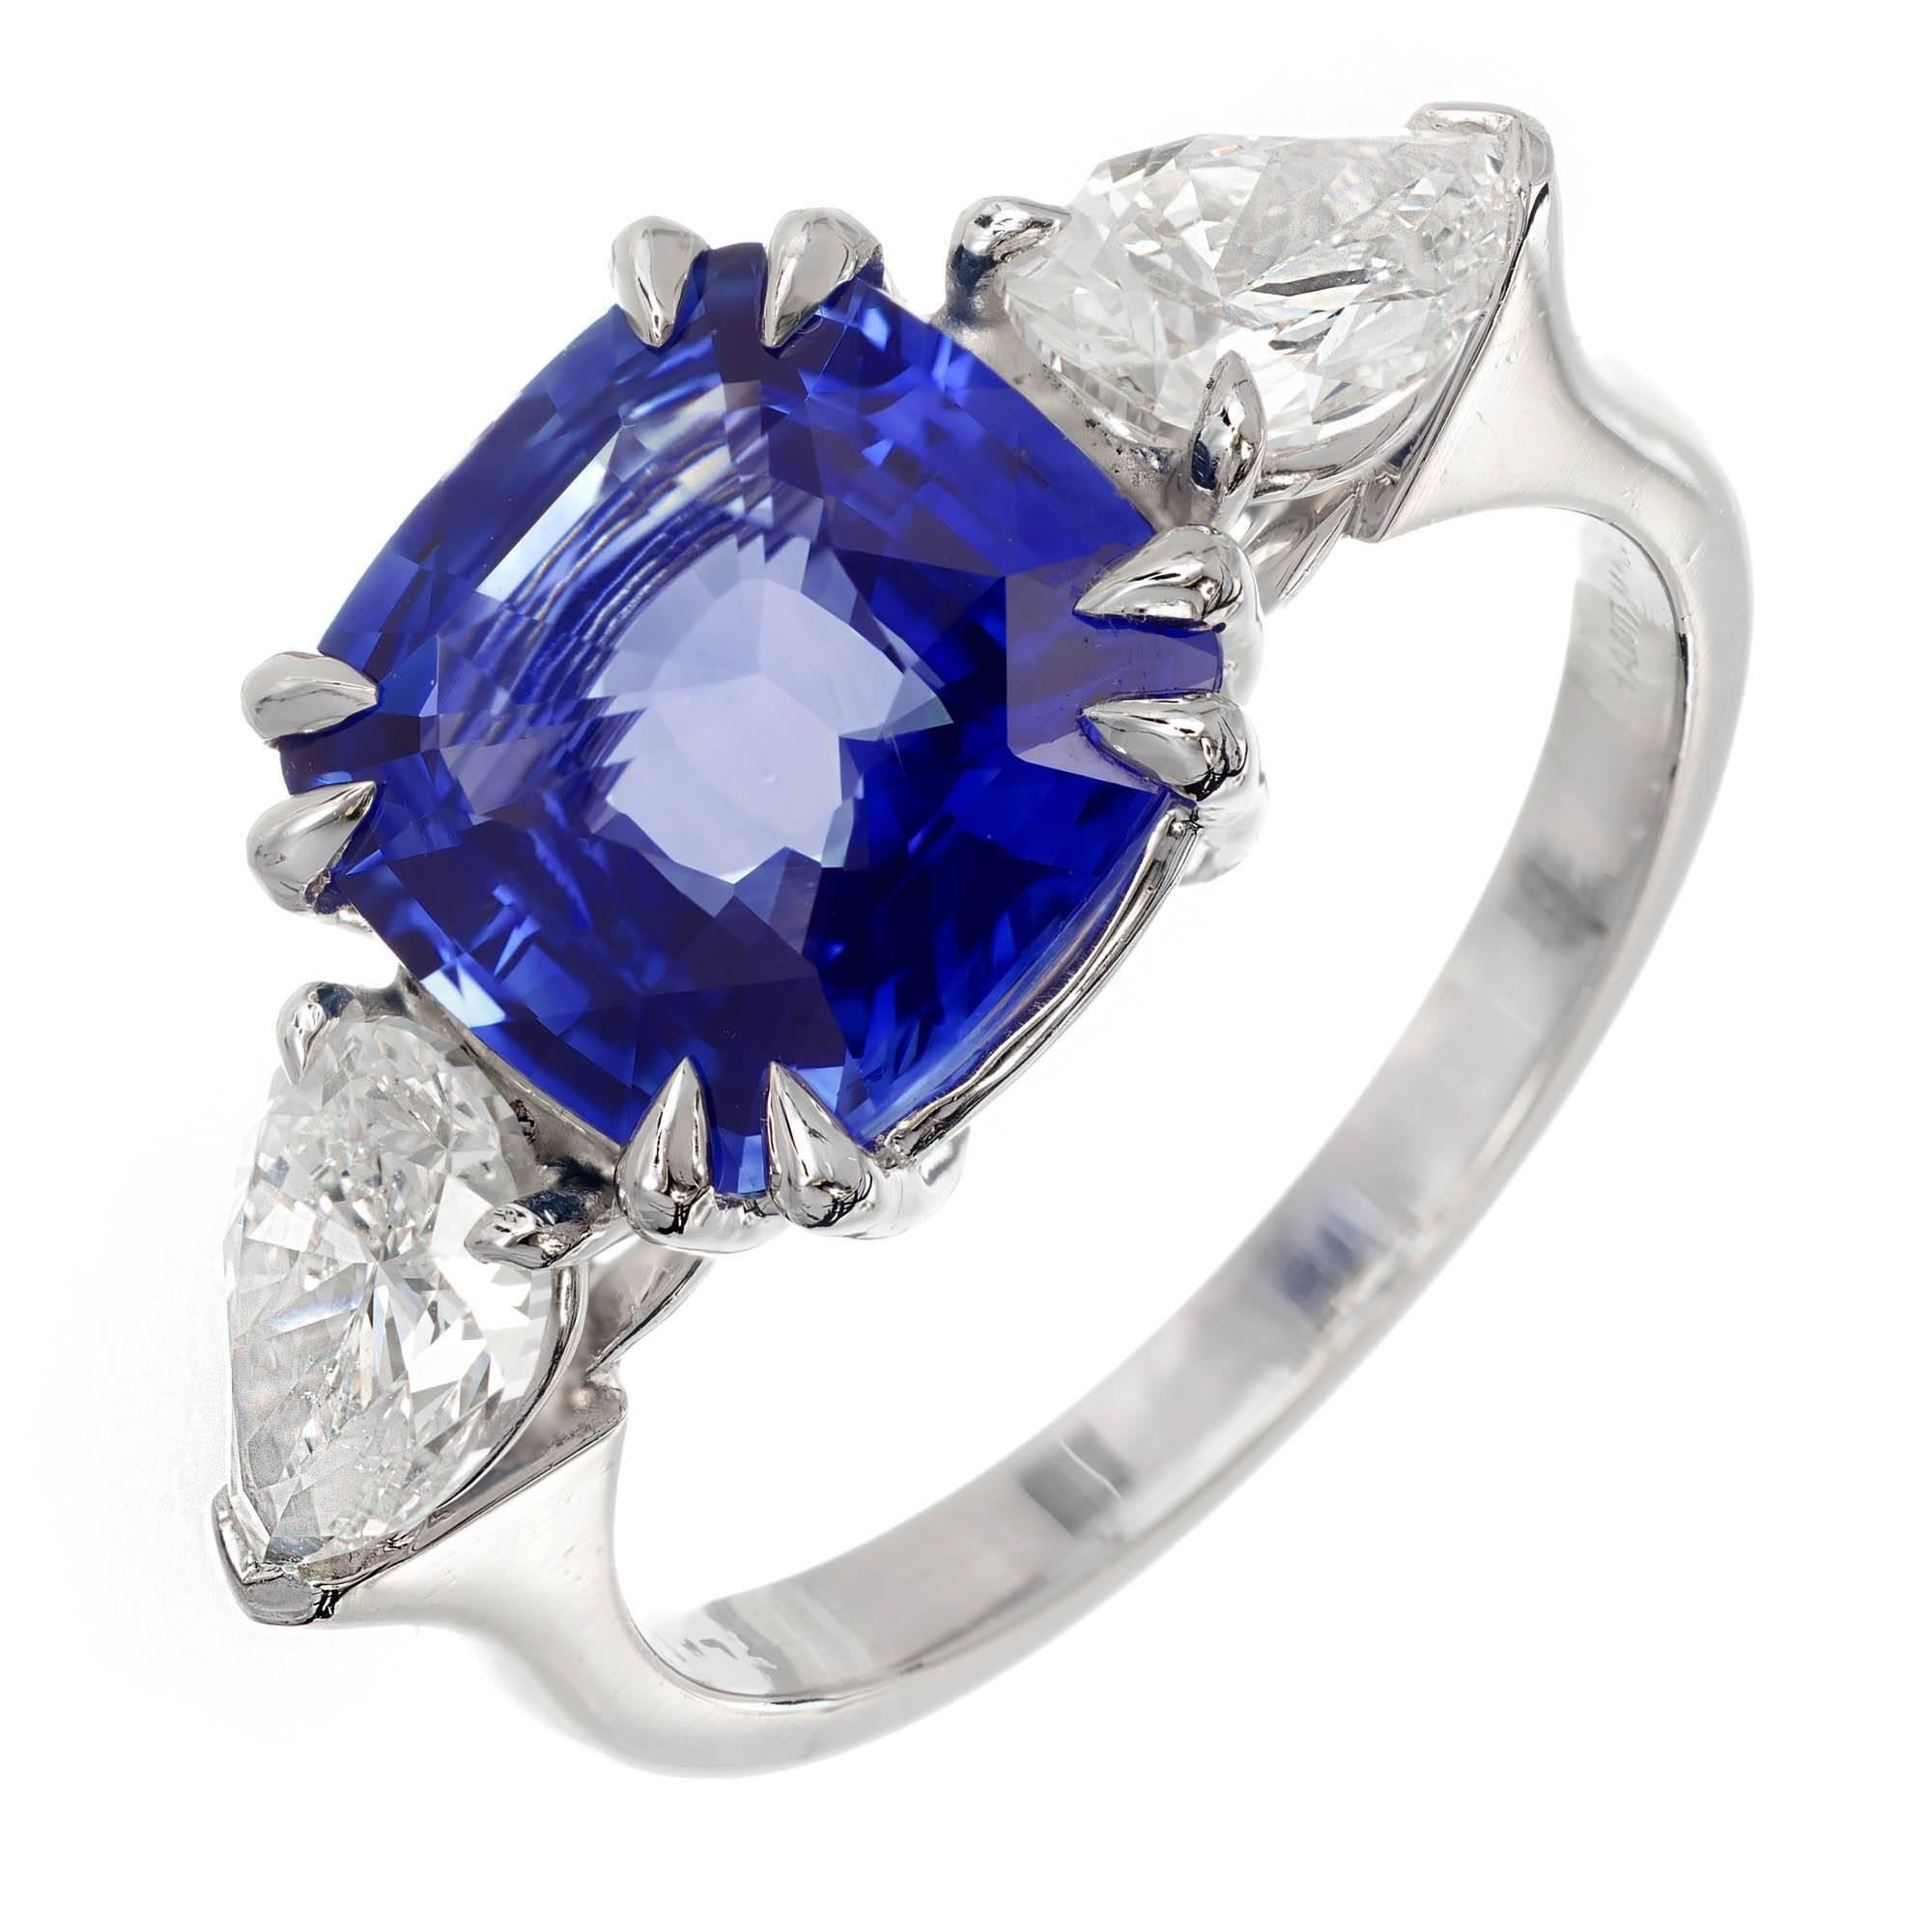 palladium and modern bespoke blue eternity products sue unique jewelleruy ring lane rings unusual wedding cornflower sapphire